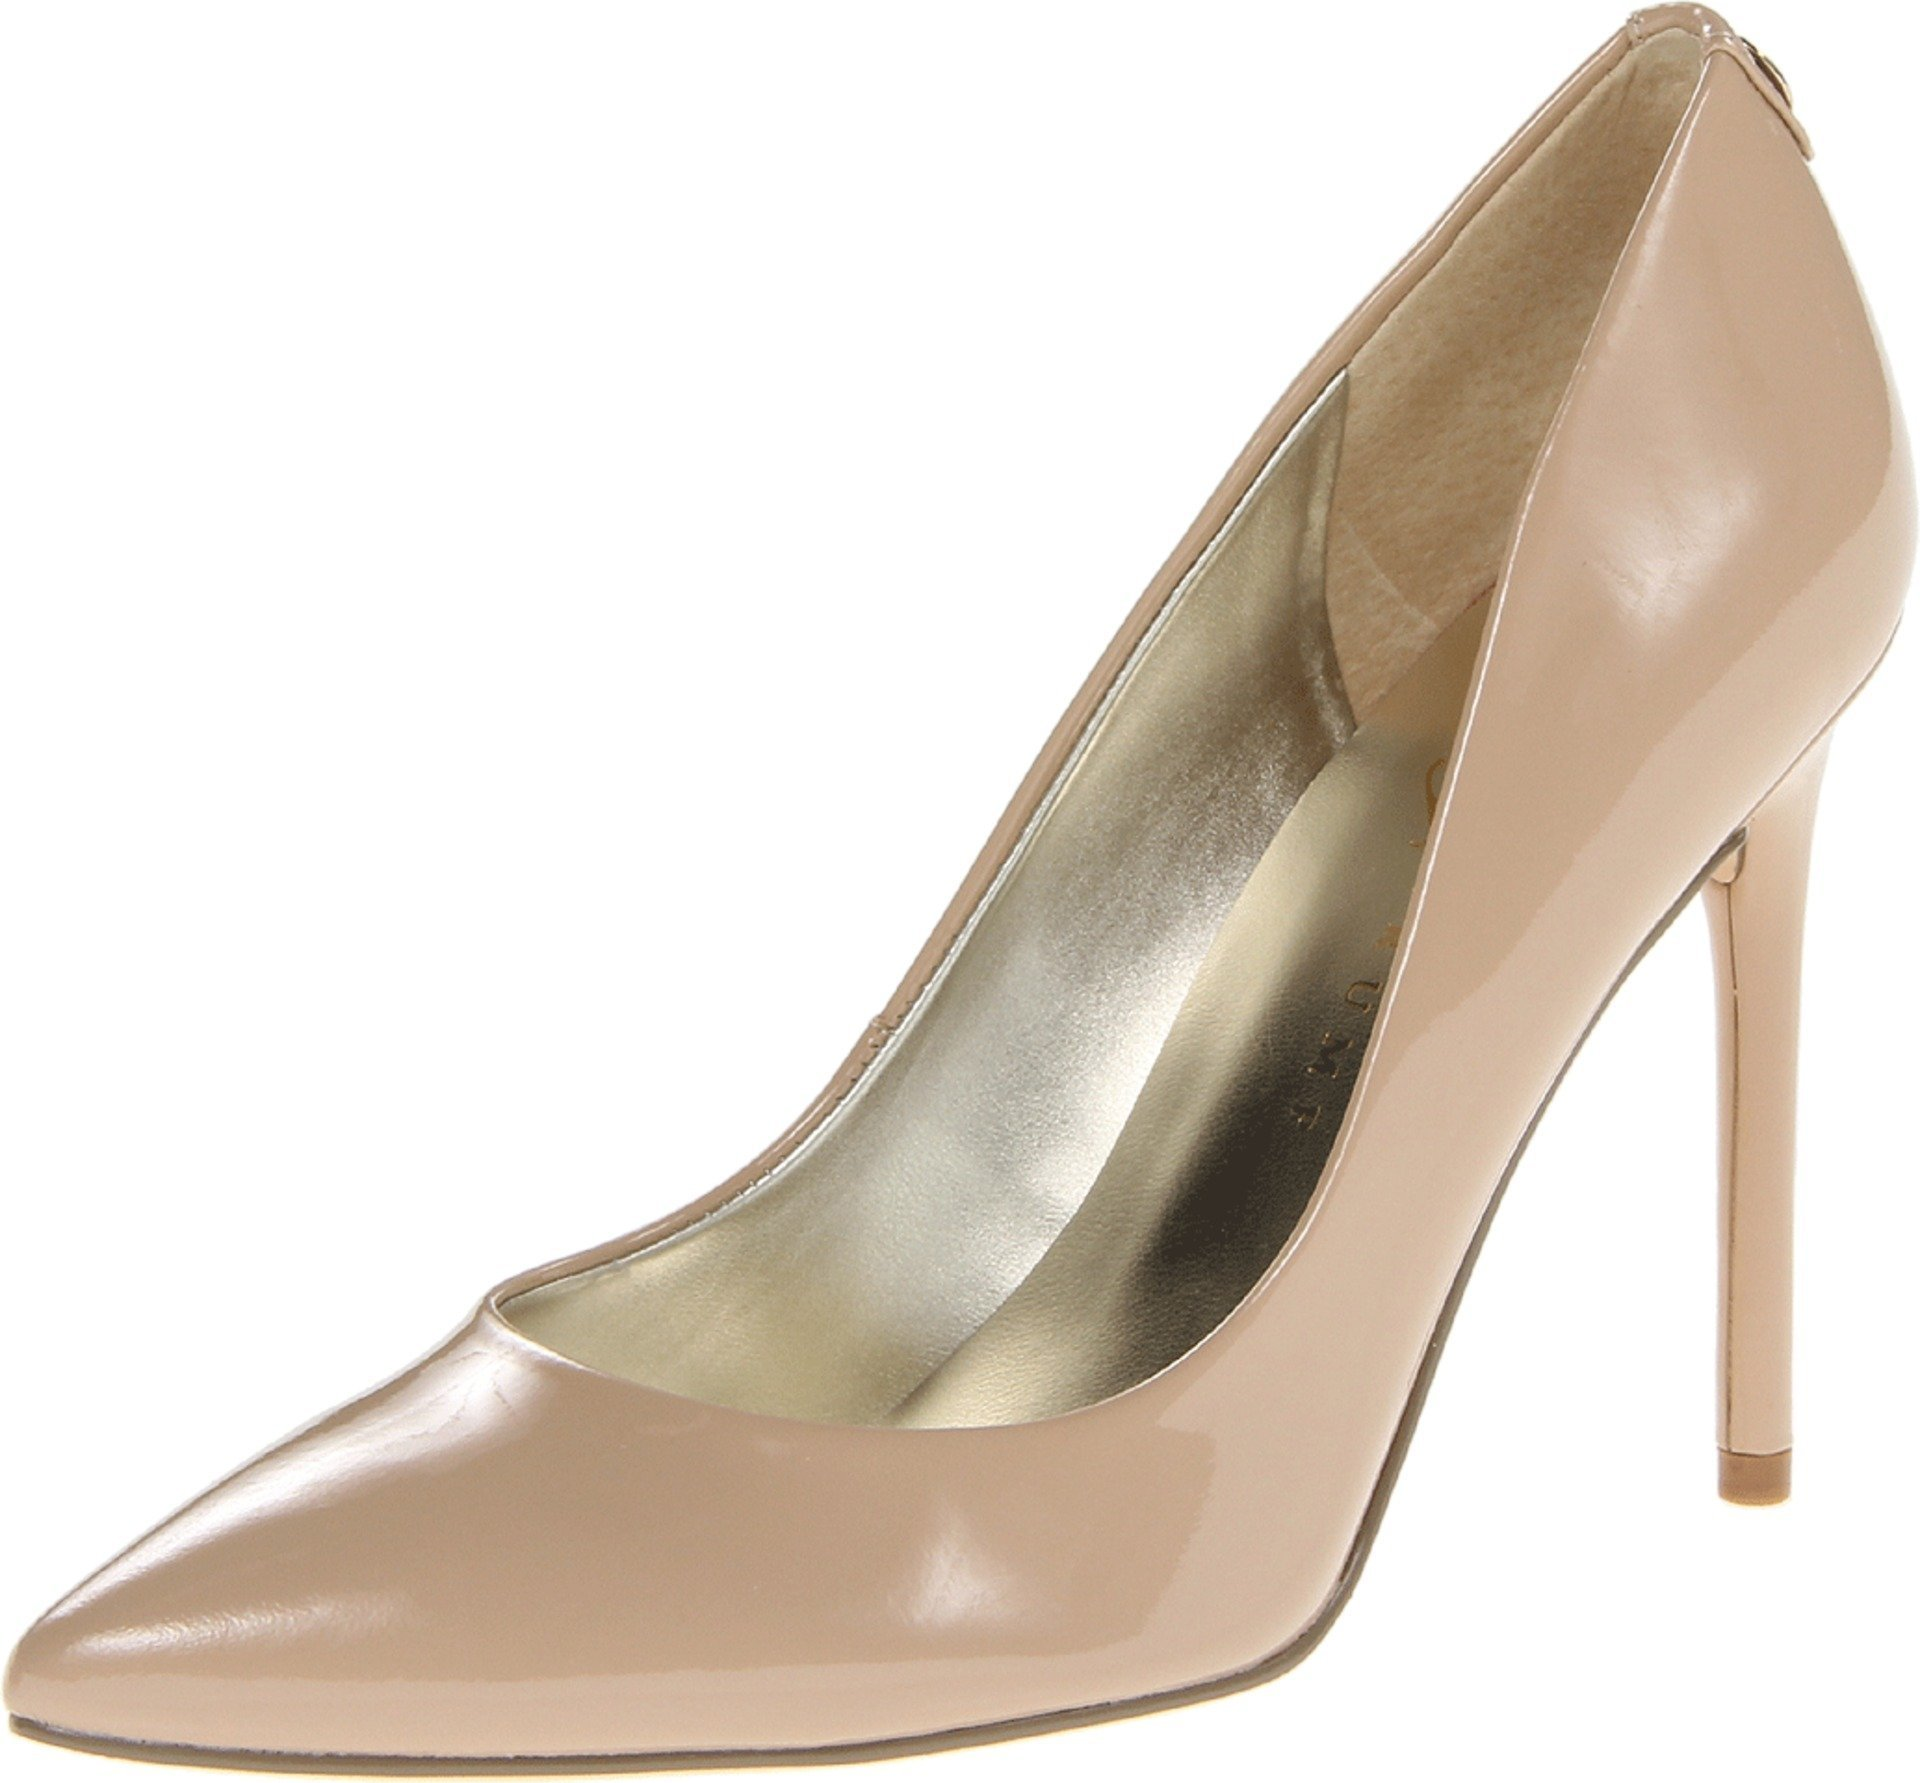 Ivanka Trump Women's Kayden4 Shoe, nude, 8.5 Medium US